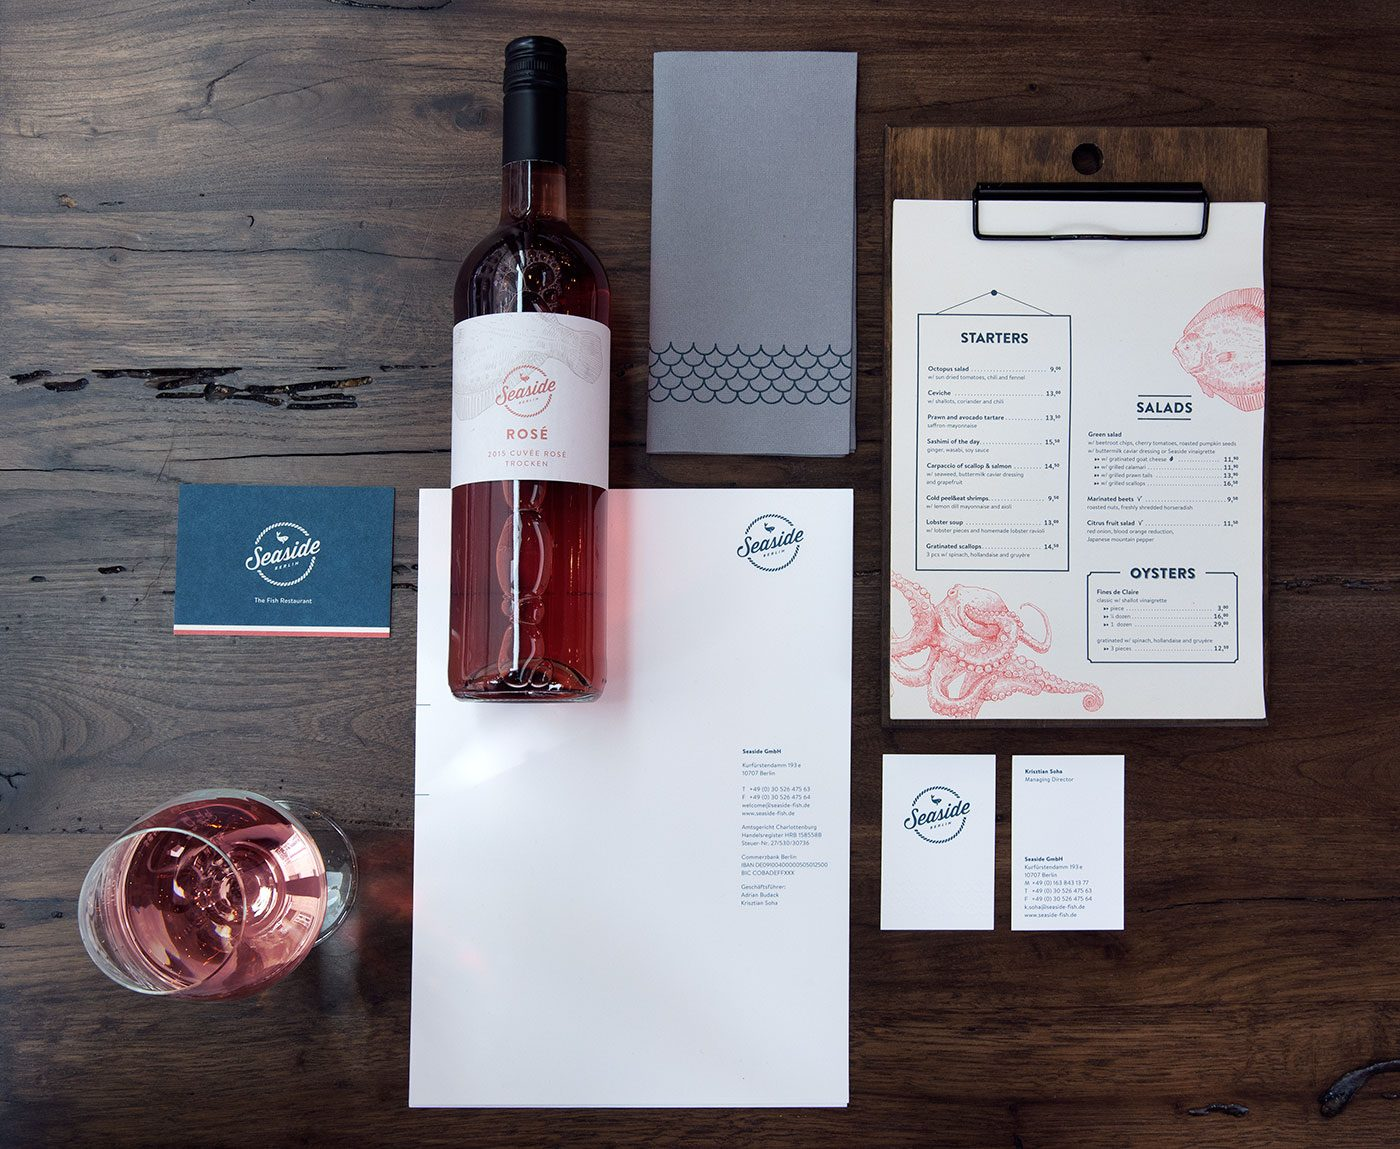 Seaside Branding by upstruct and muskat - 03